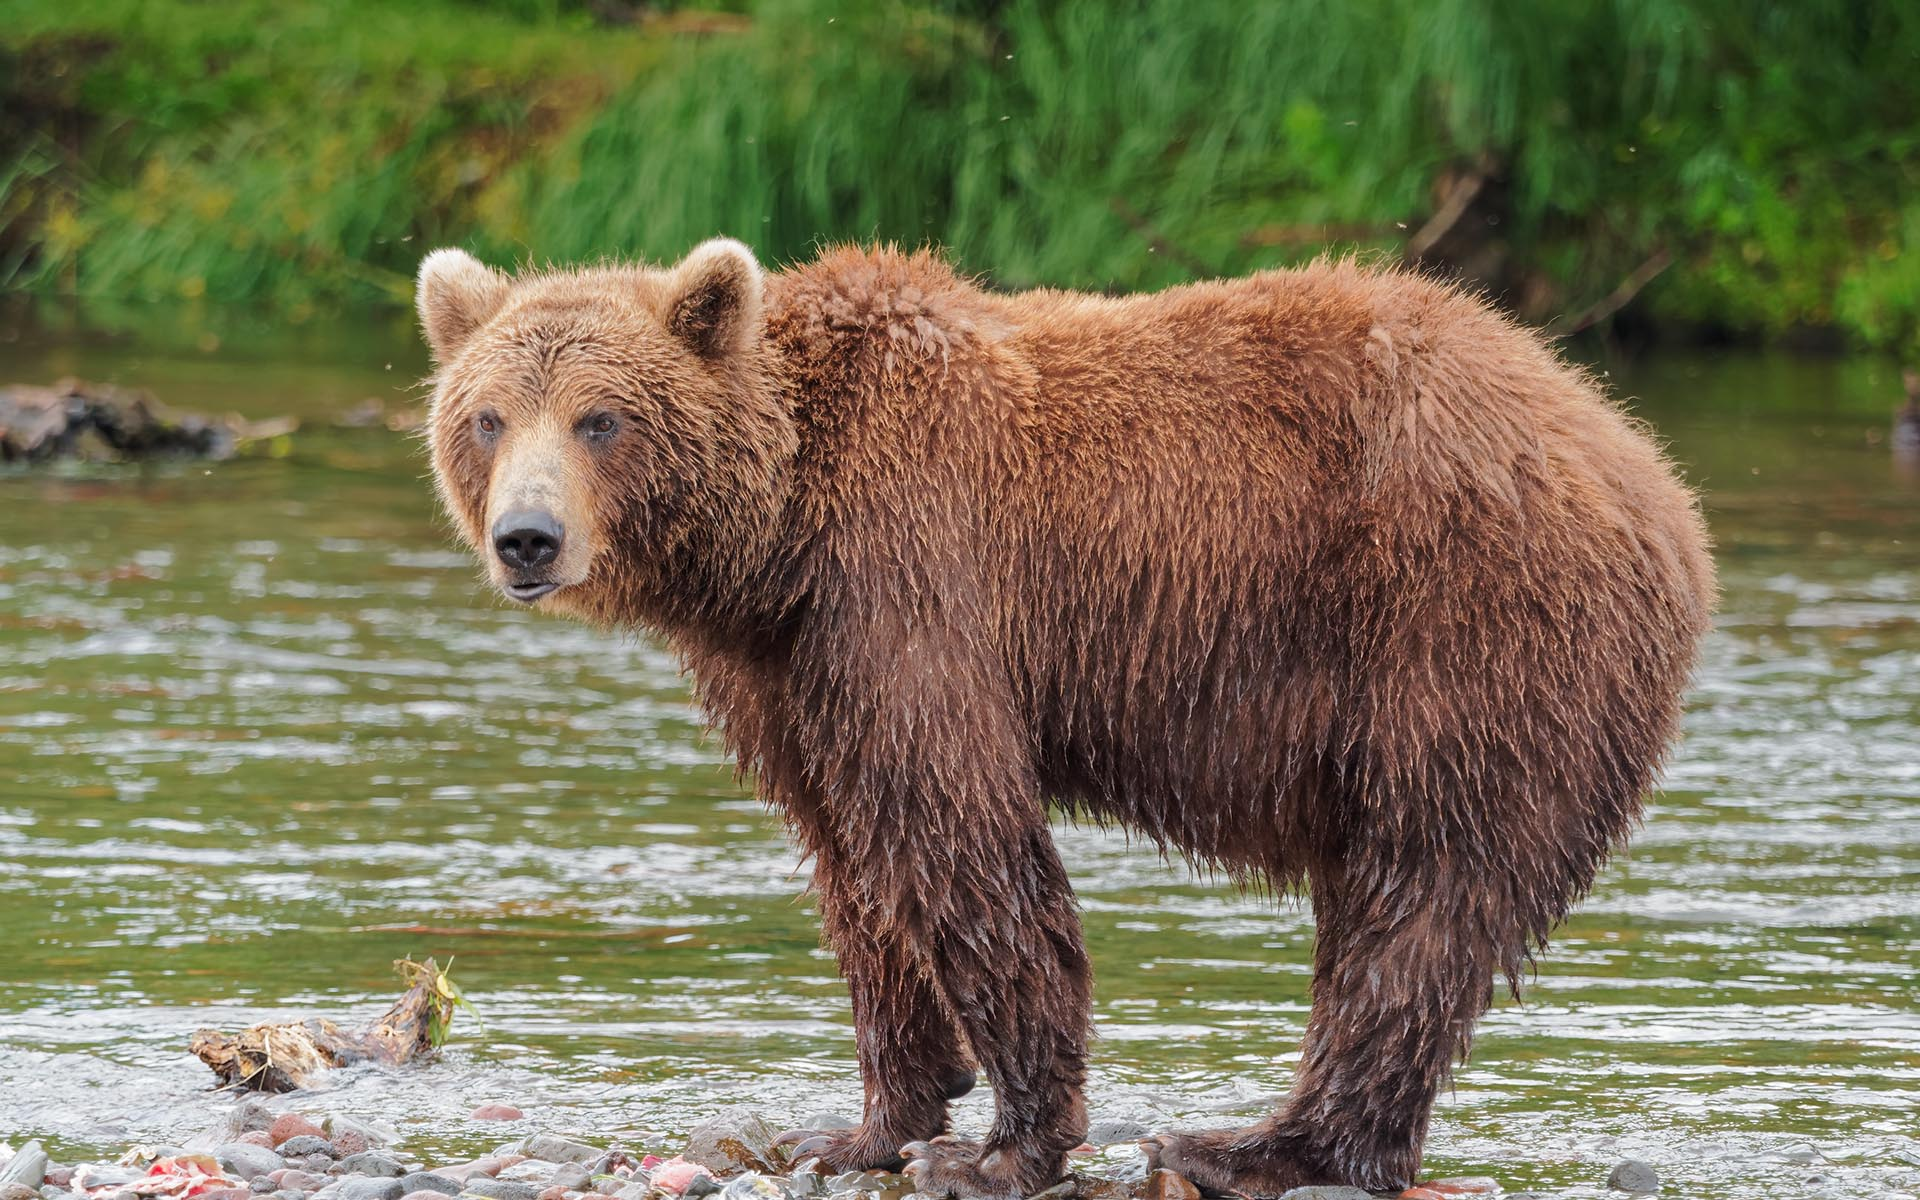 Up In a Down Market? 2 Projects That Could Help You Fend Off the Bear